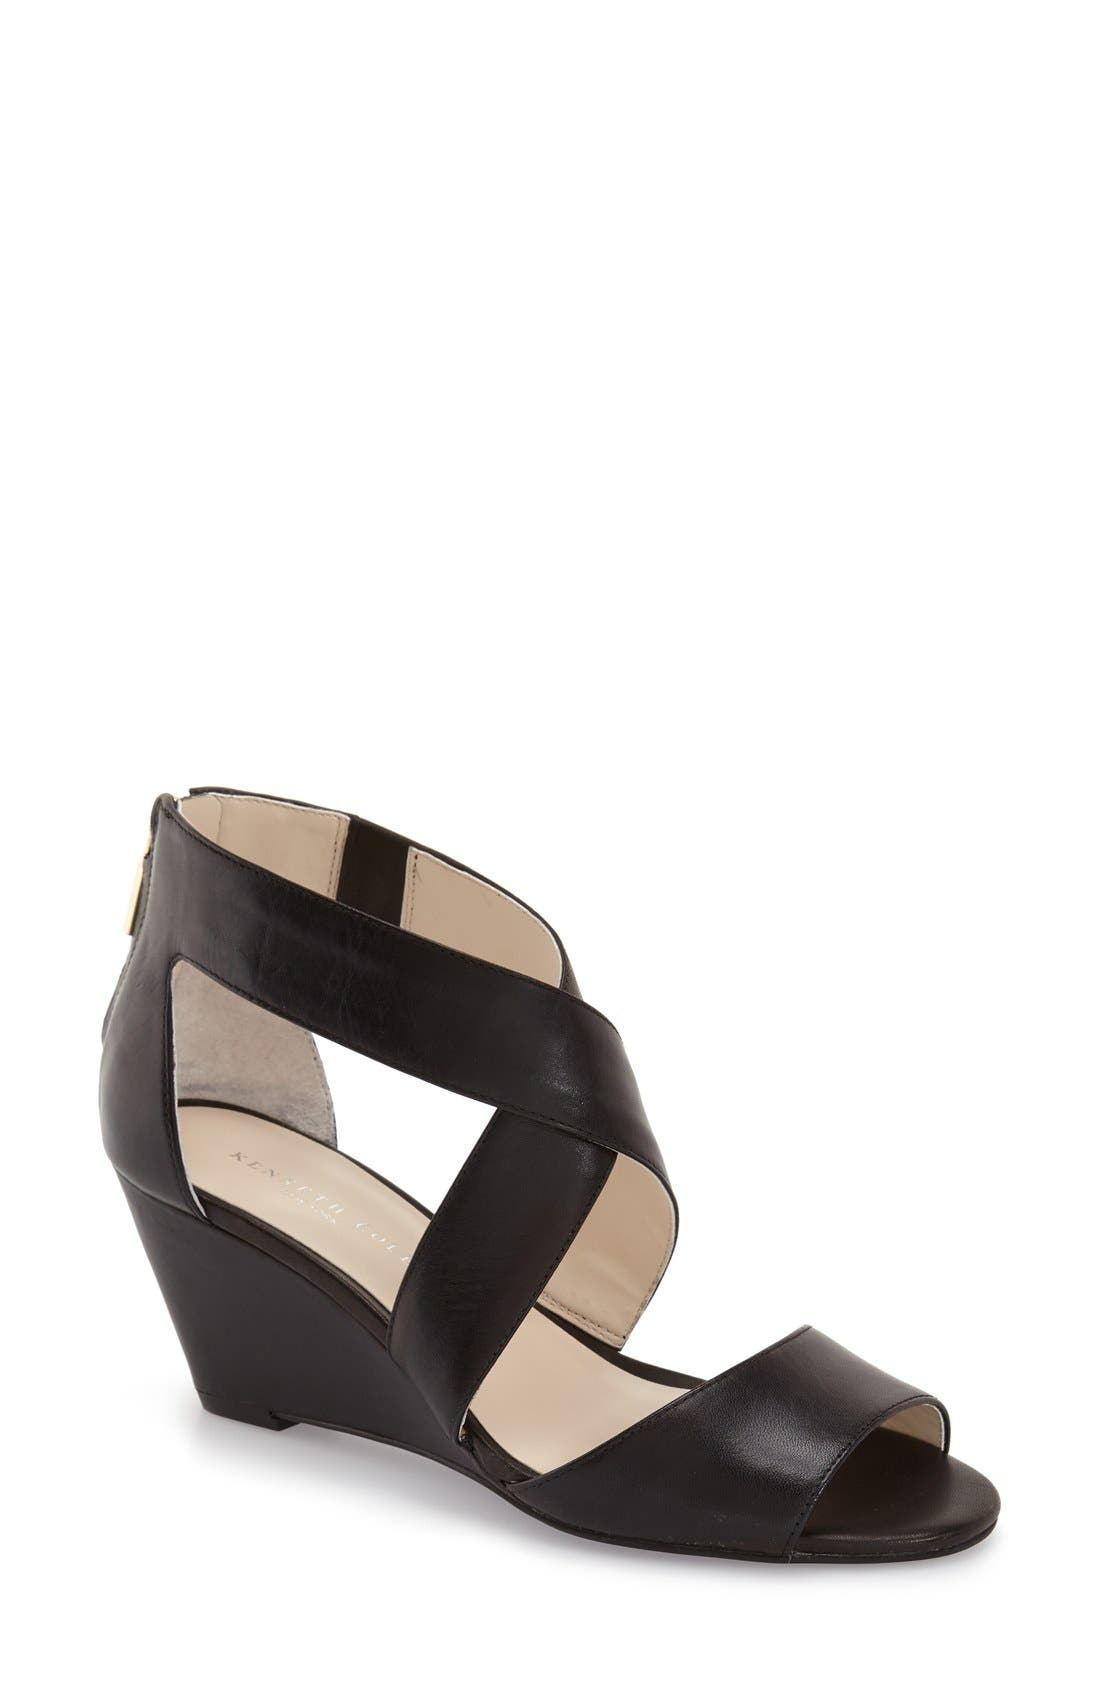 'Drina' Wedge Sandal,                         Main,                         color,